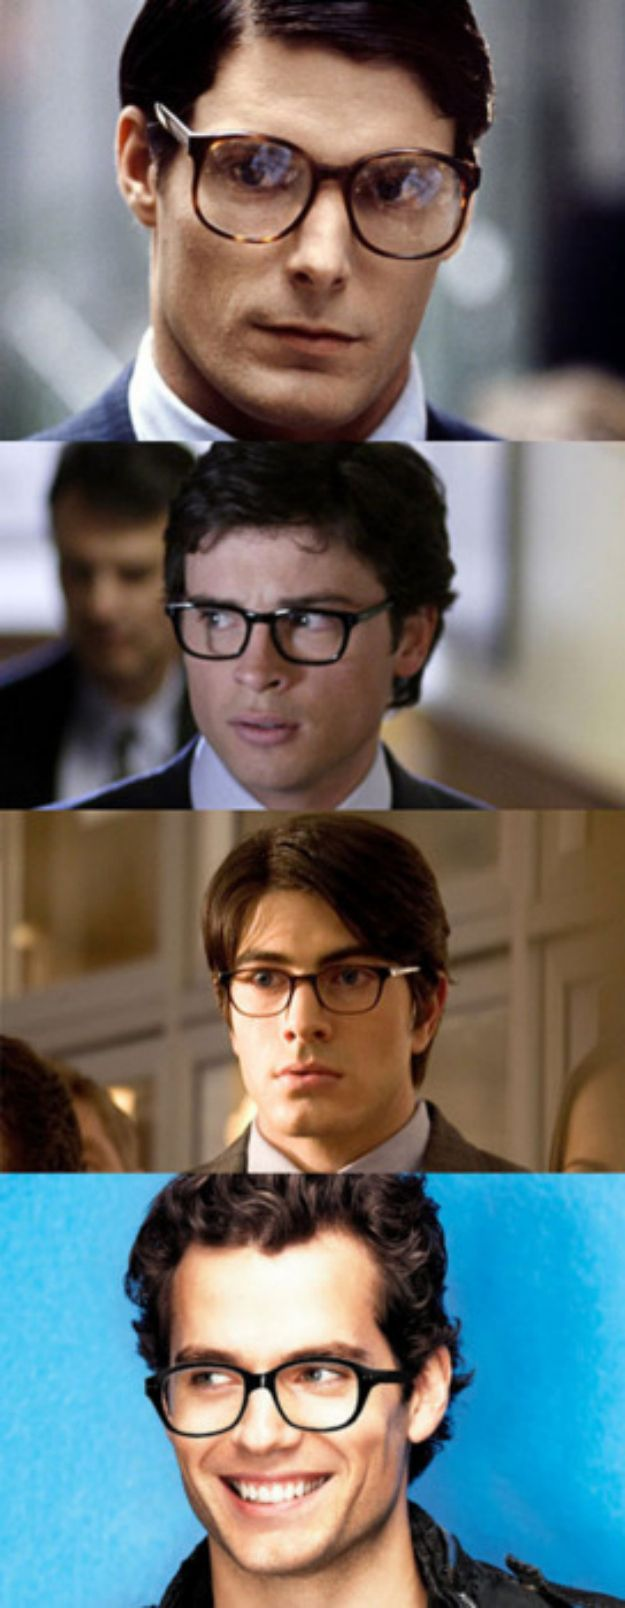 Sorry, Routh, every time I see you I think of Daniel Shaw and I want to punch you in the face with a tire iron.